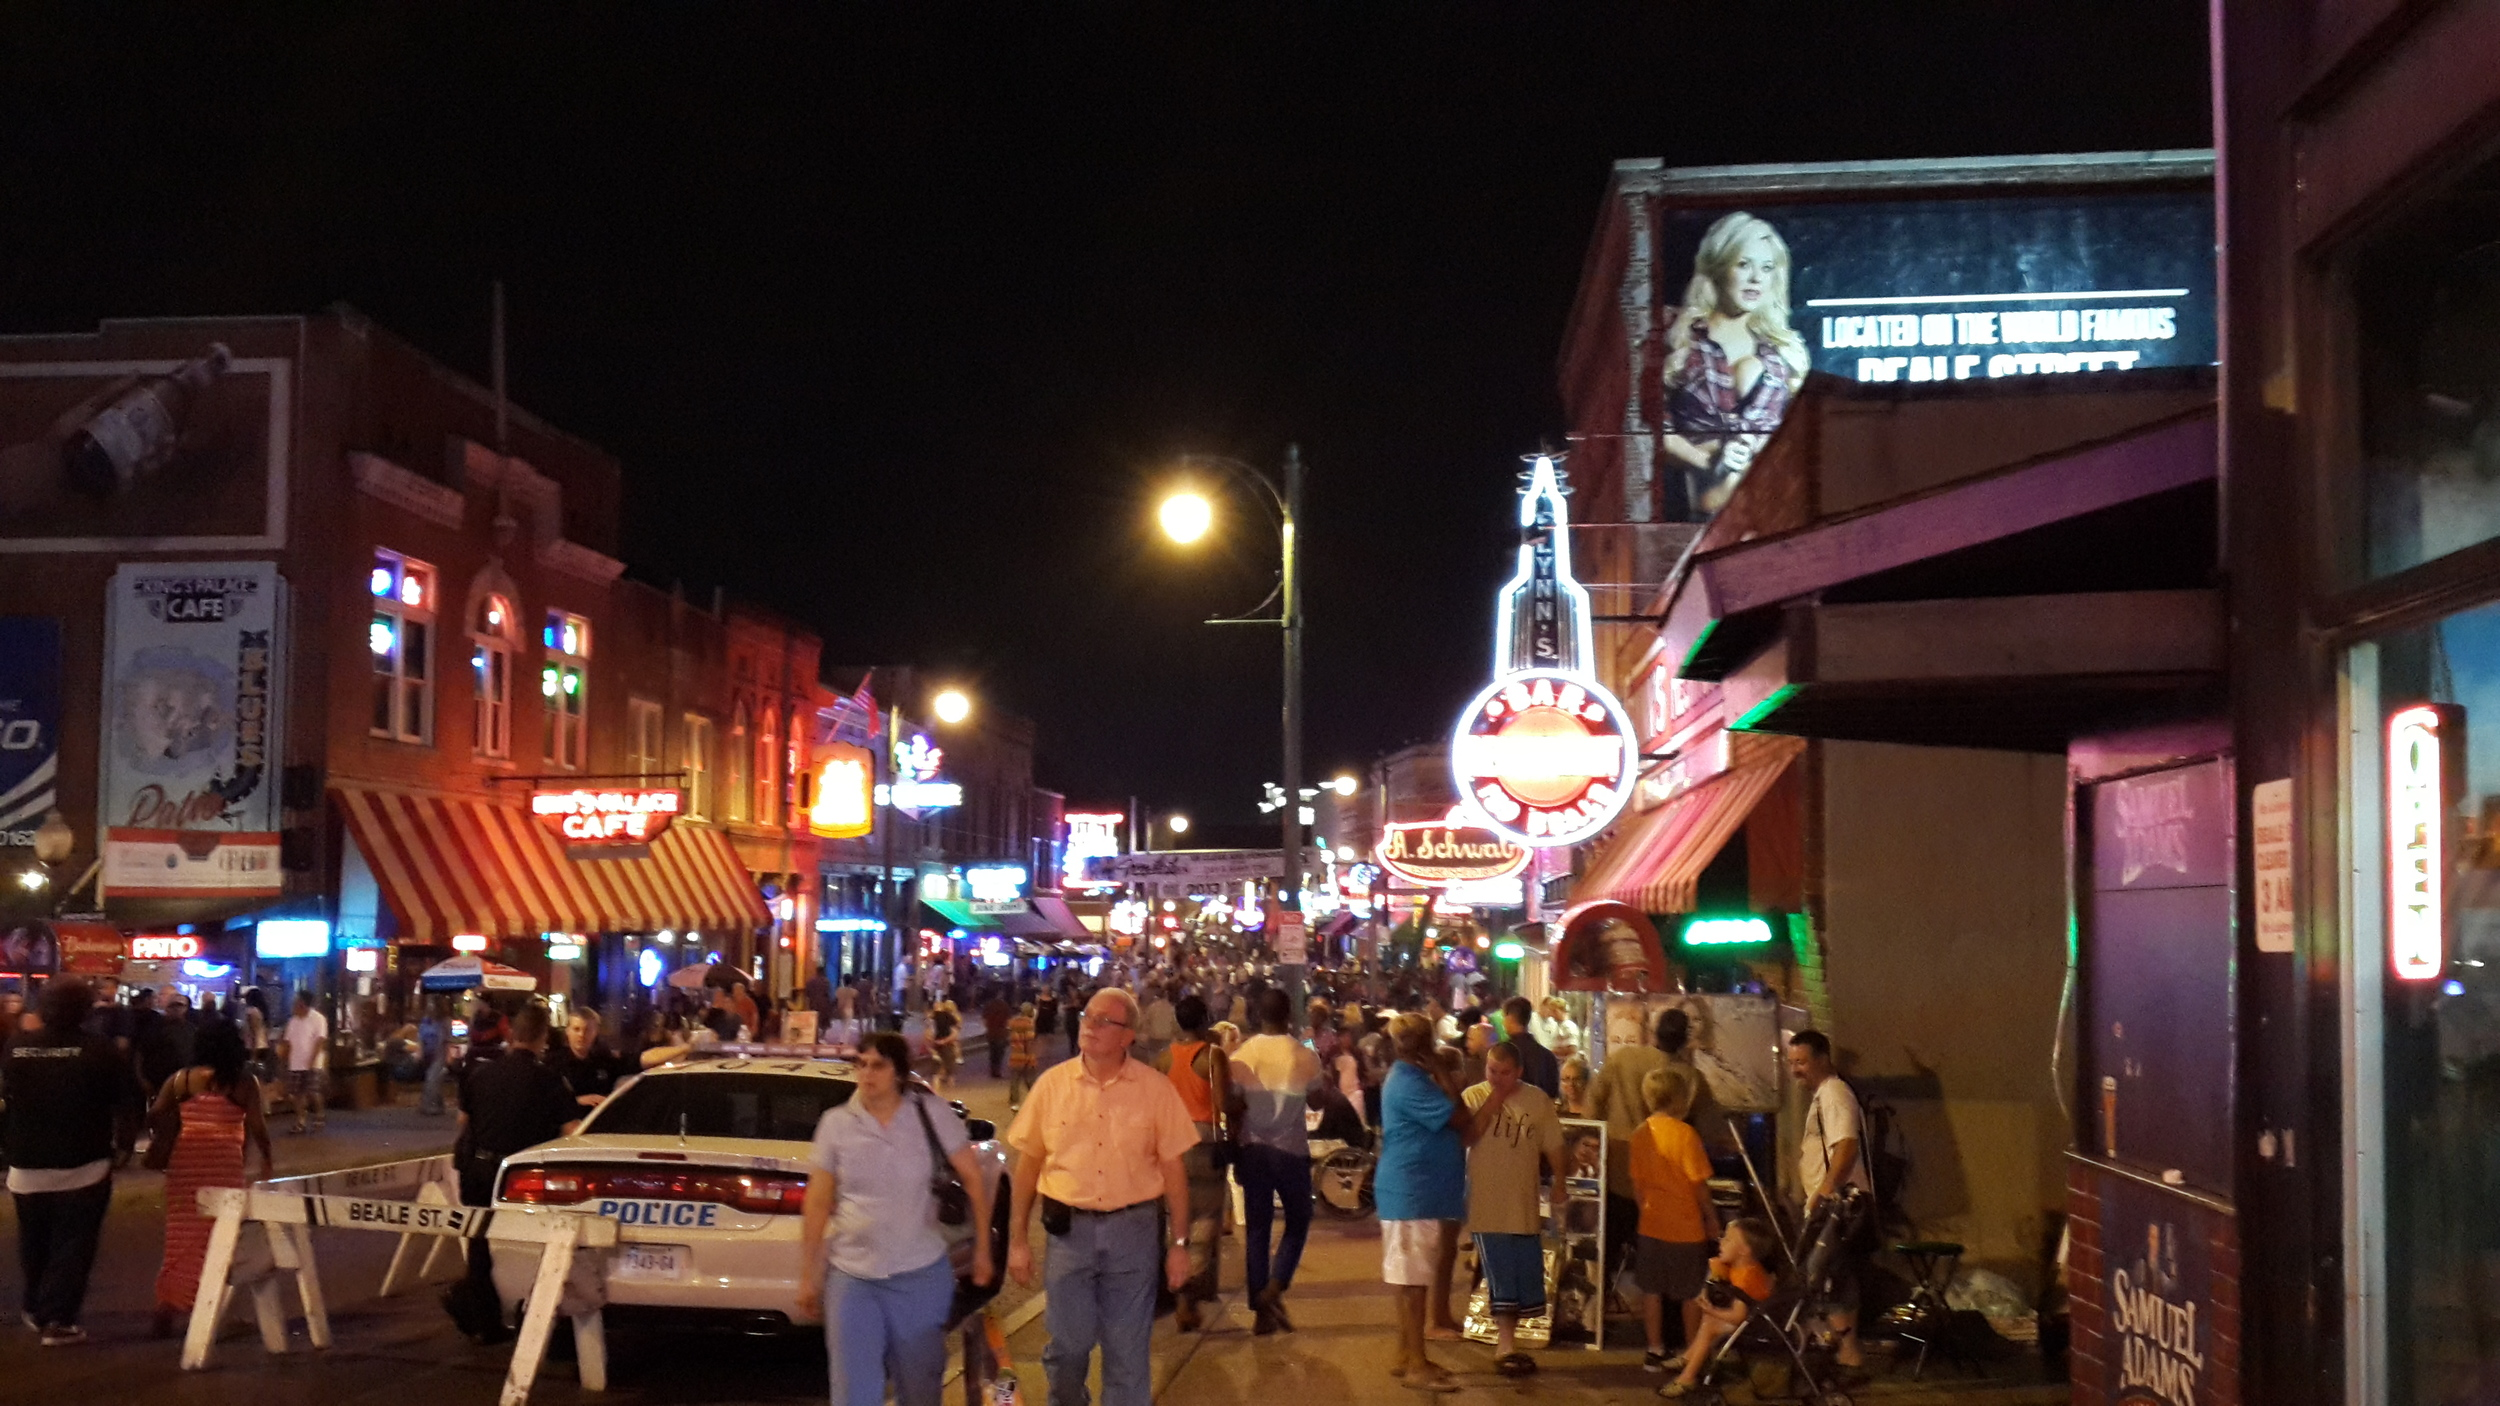 A quieter moment on Beale Street.